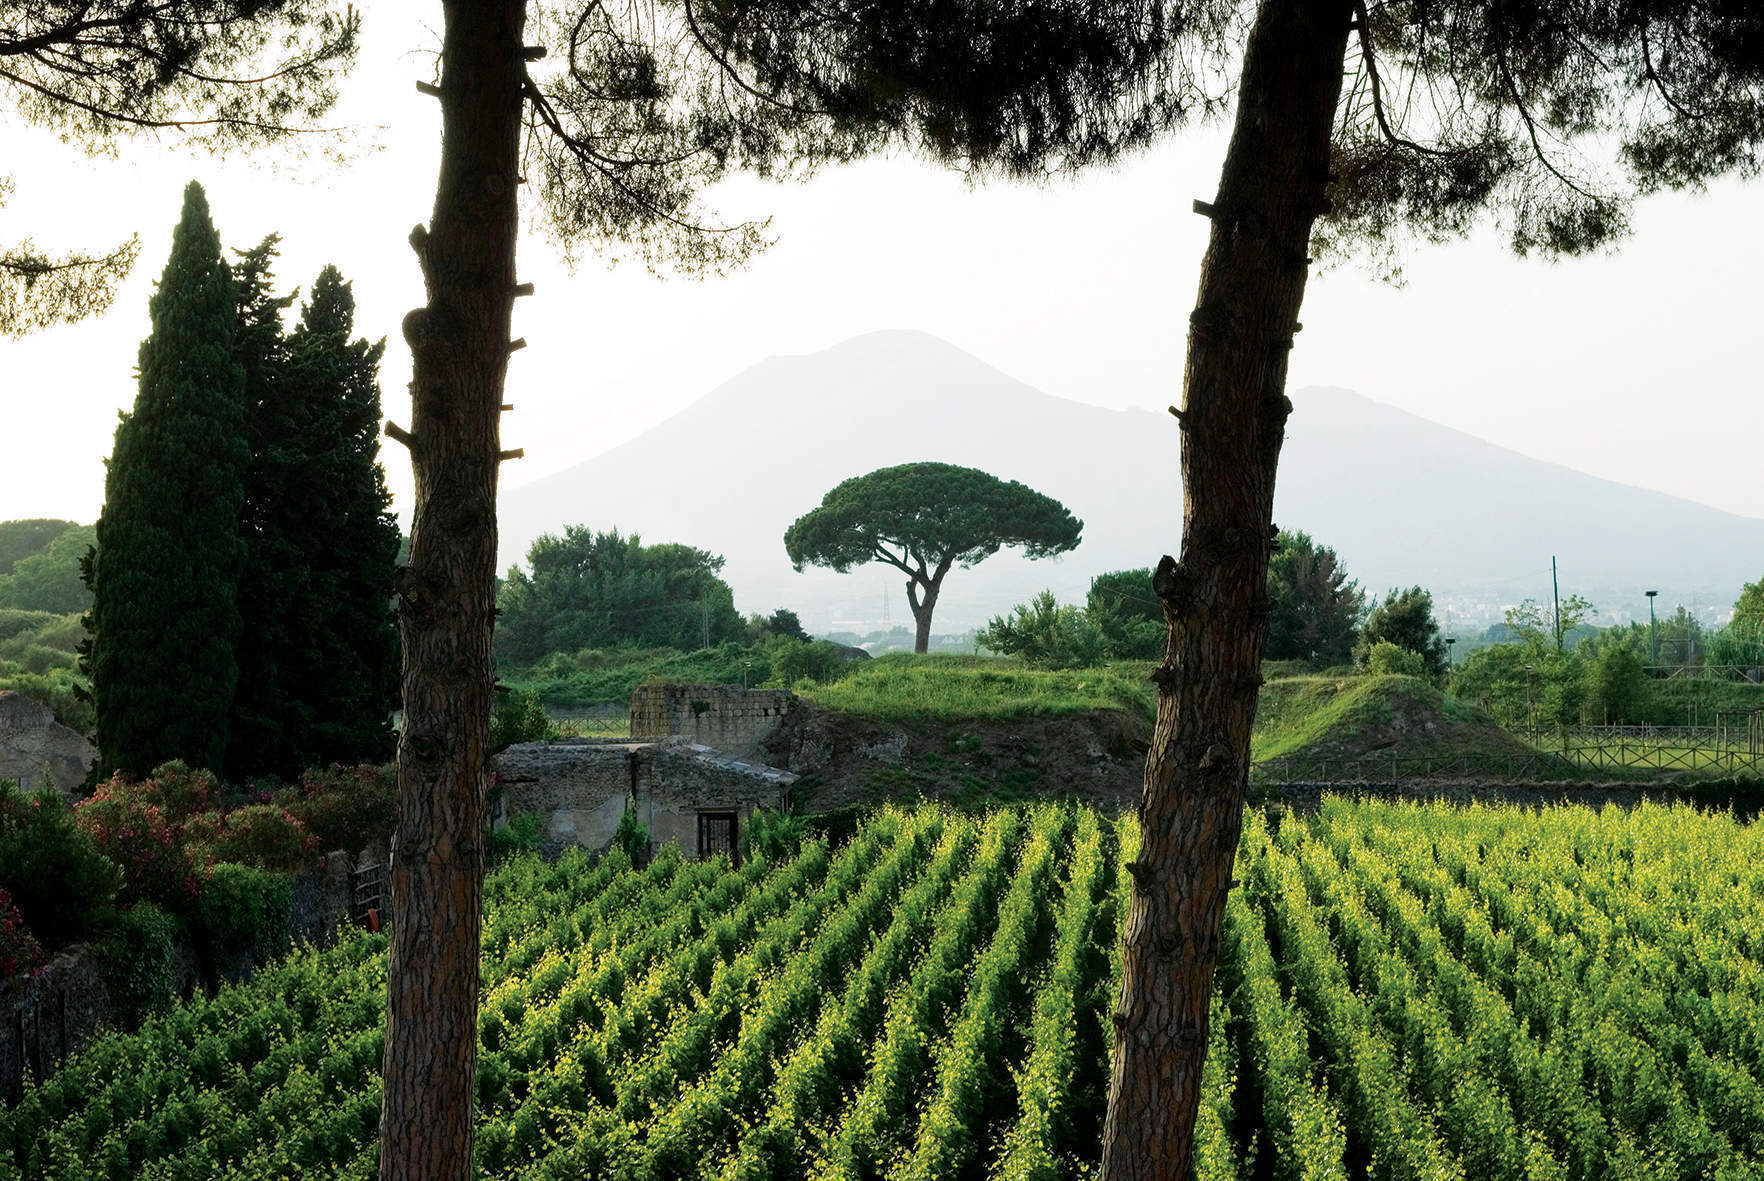 Sipping the wines that grew from molten lava